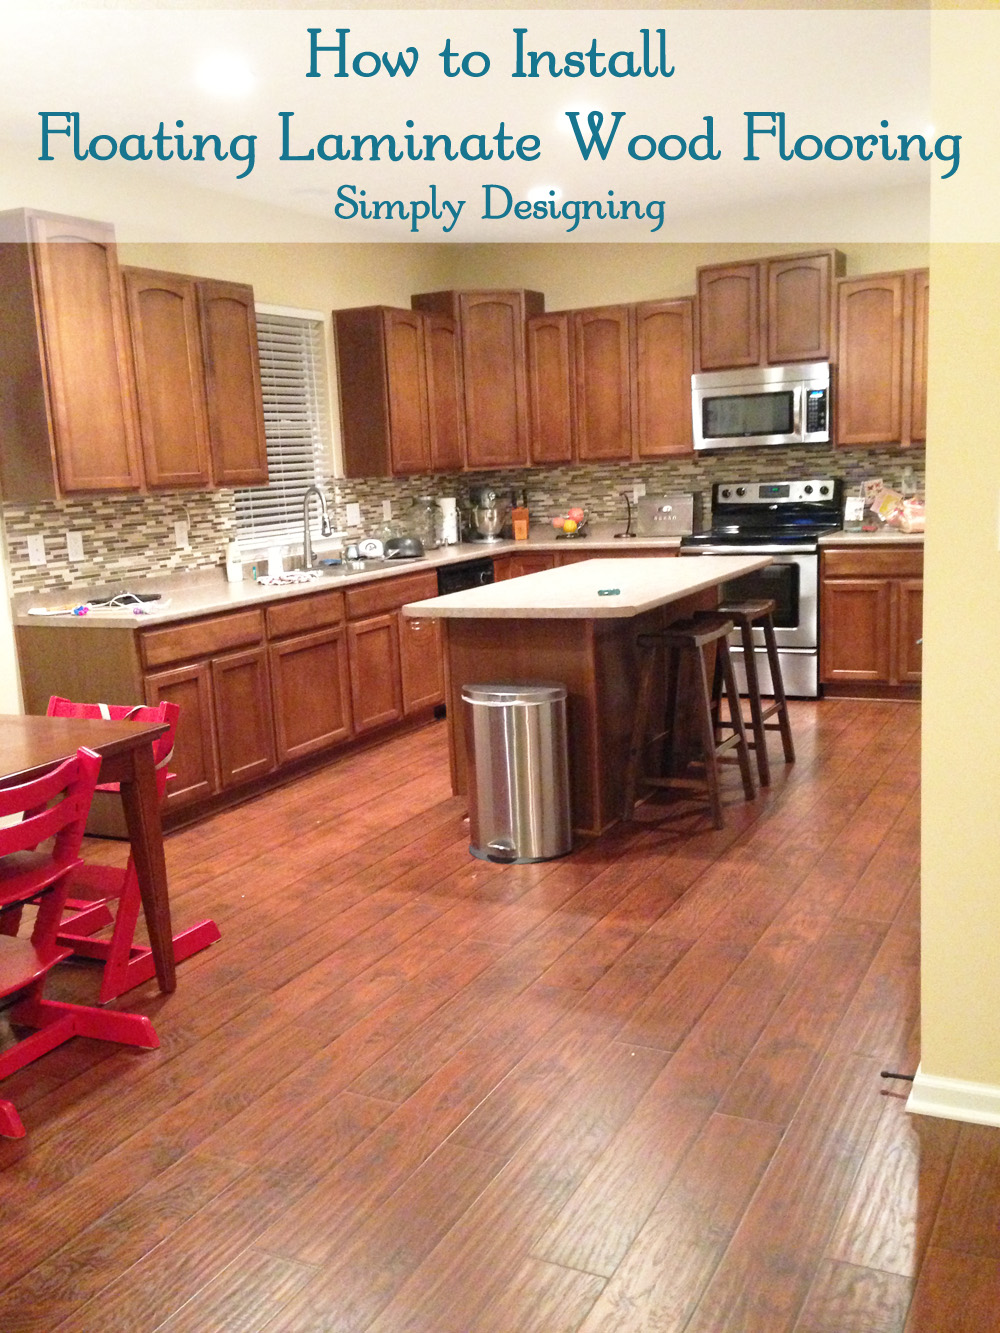 Merveilleux How To Install Floating Laminate Wood Flooring | #diy #homeimprovement # Flooring | Simply